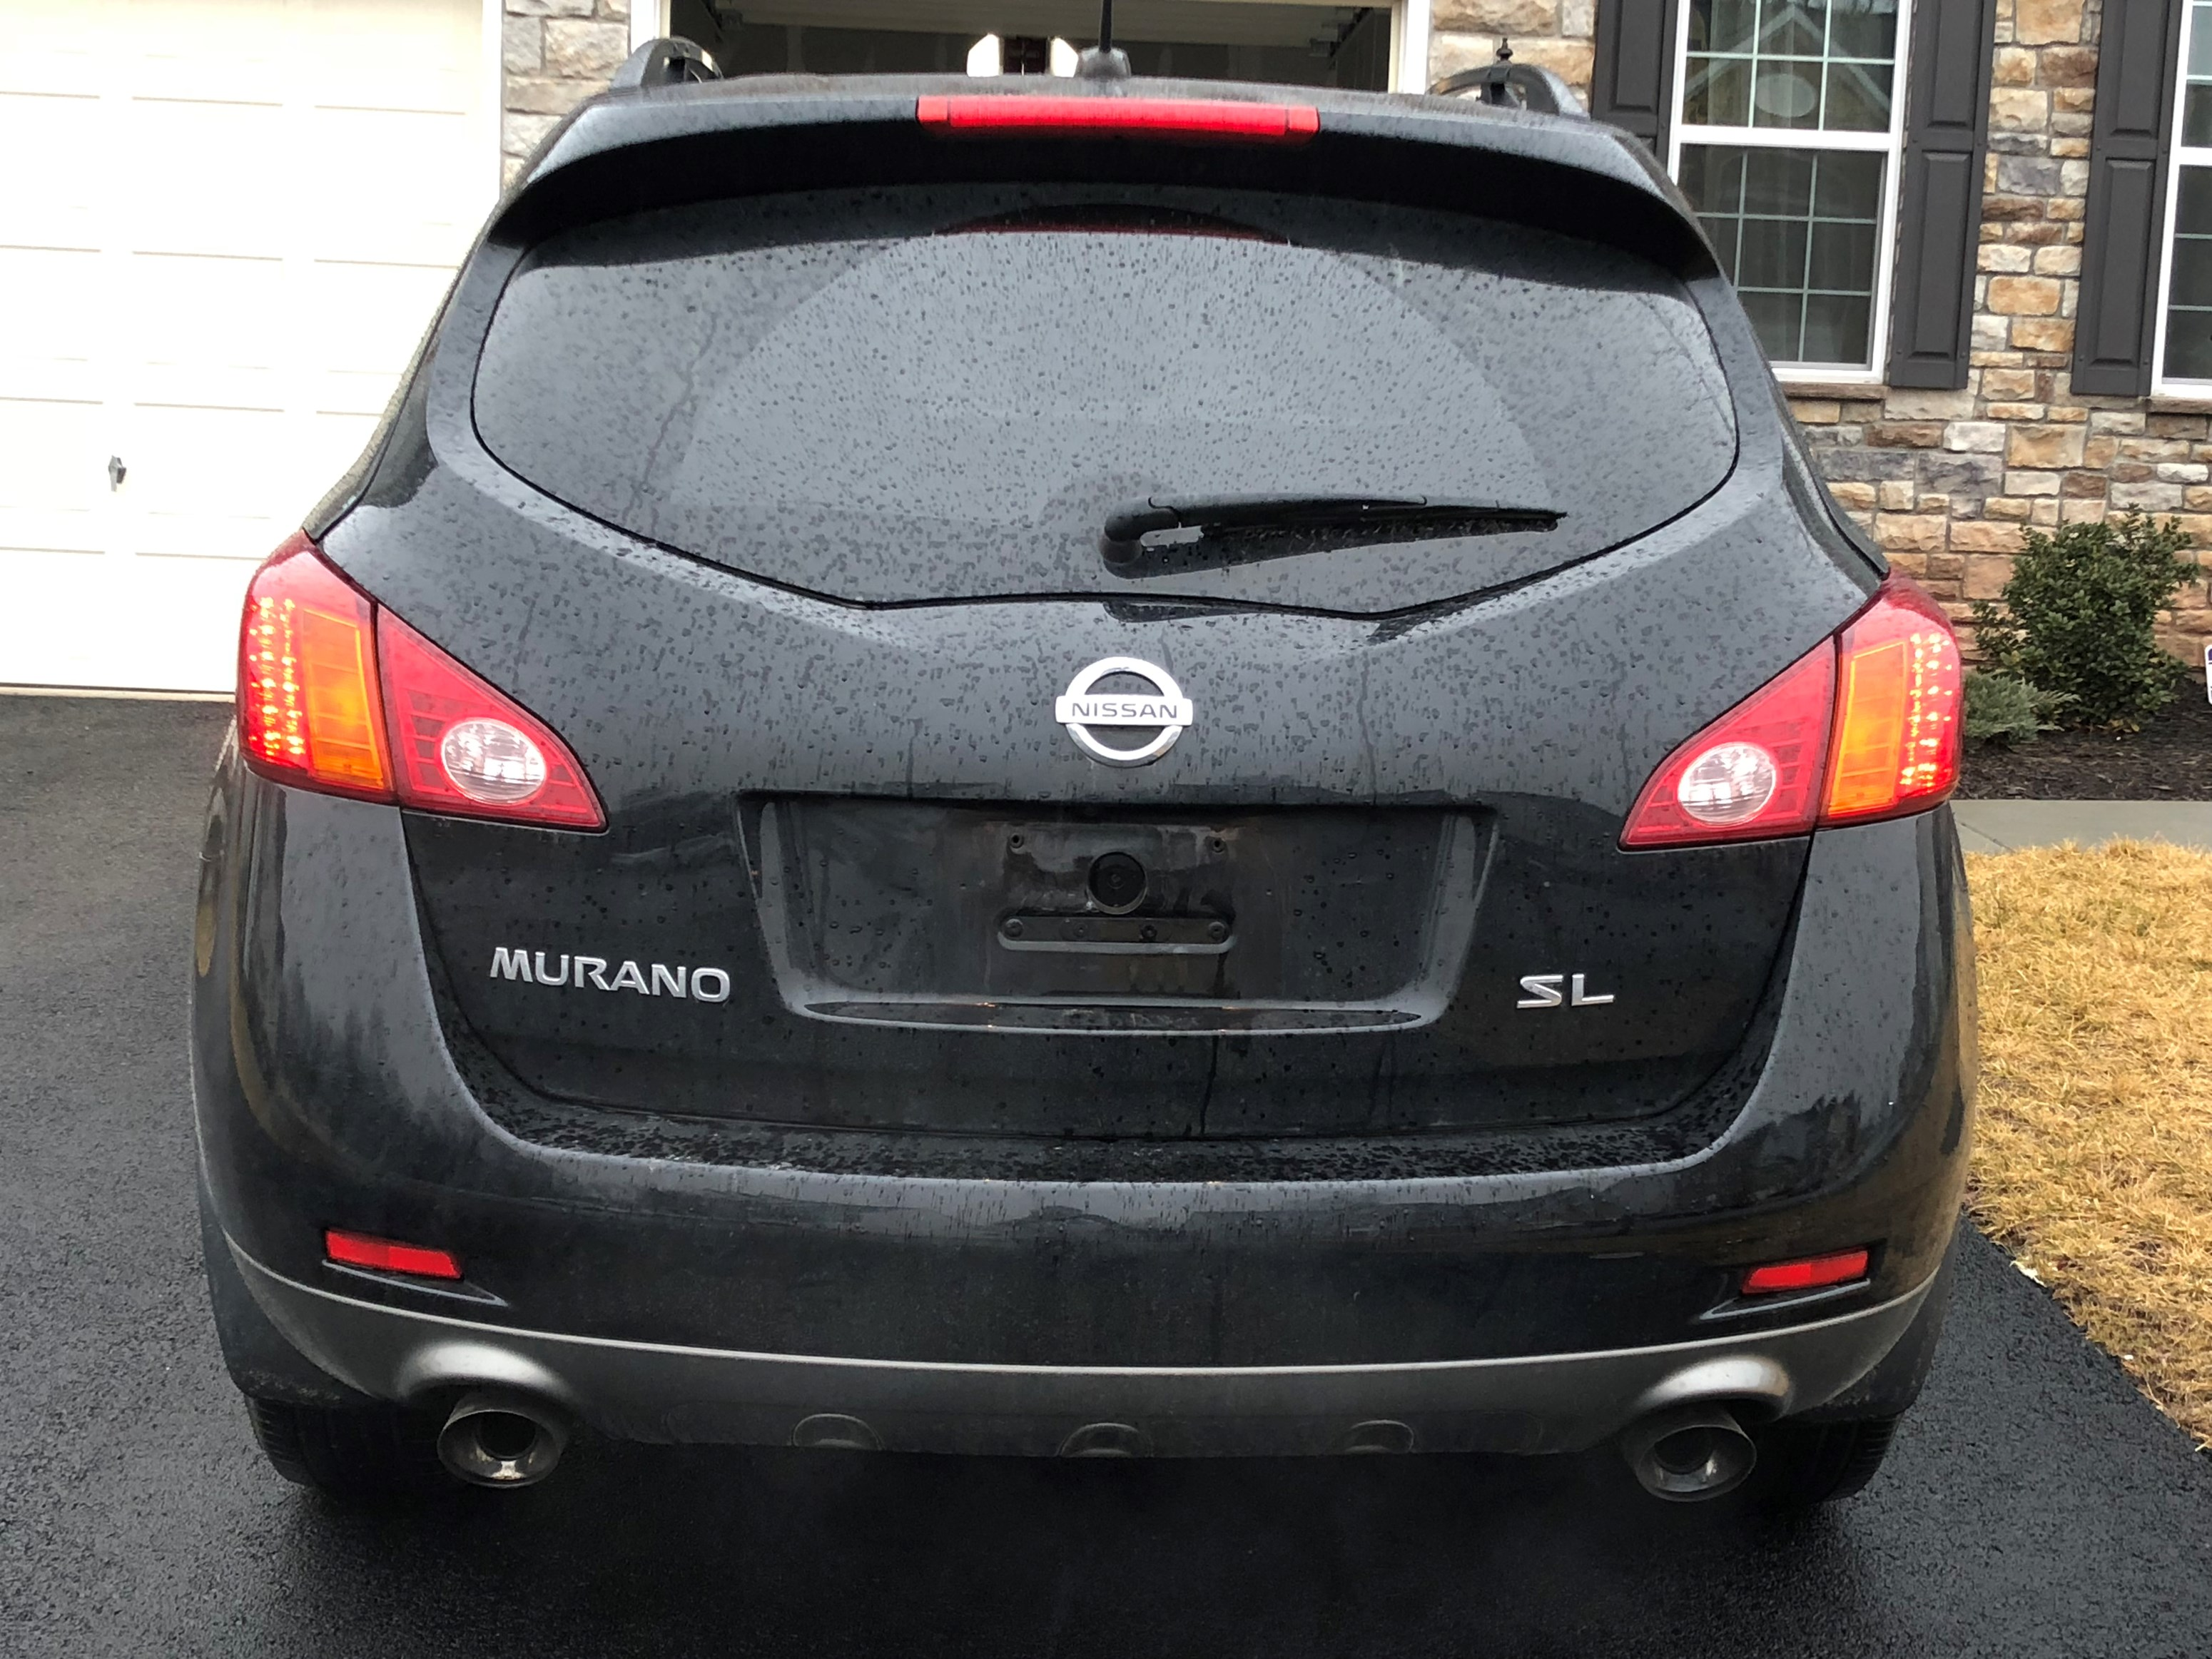 2009 Nissan Murano For Sale By Owner/ Used Nissan Murano Cars in ...